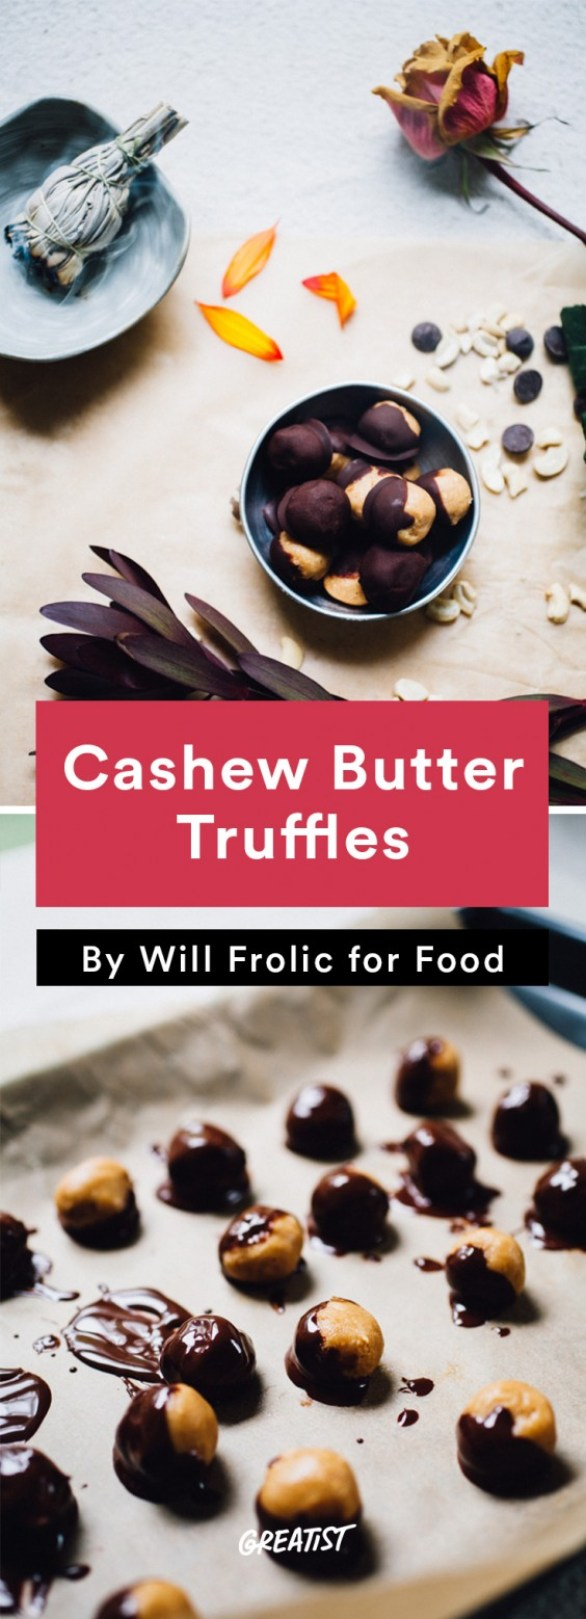 will frolic for food: Cashew Butter Truffles